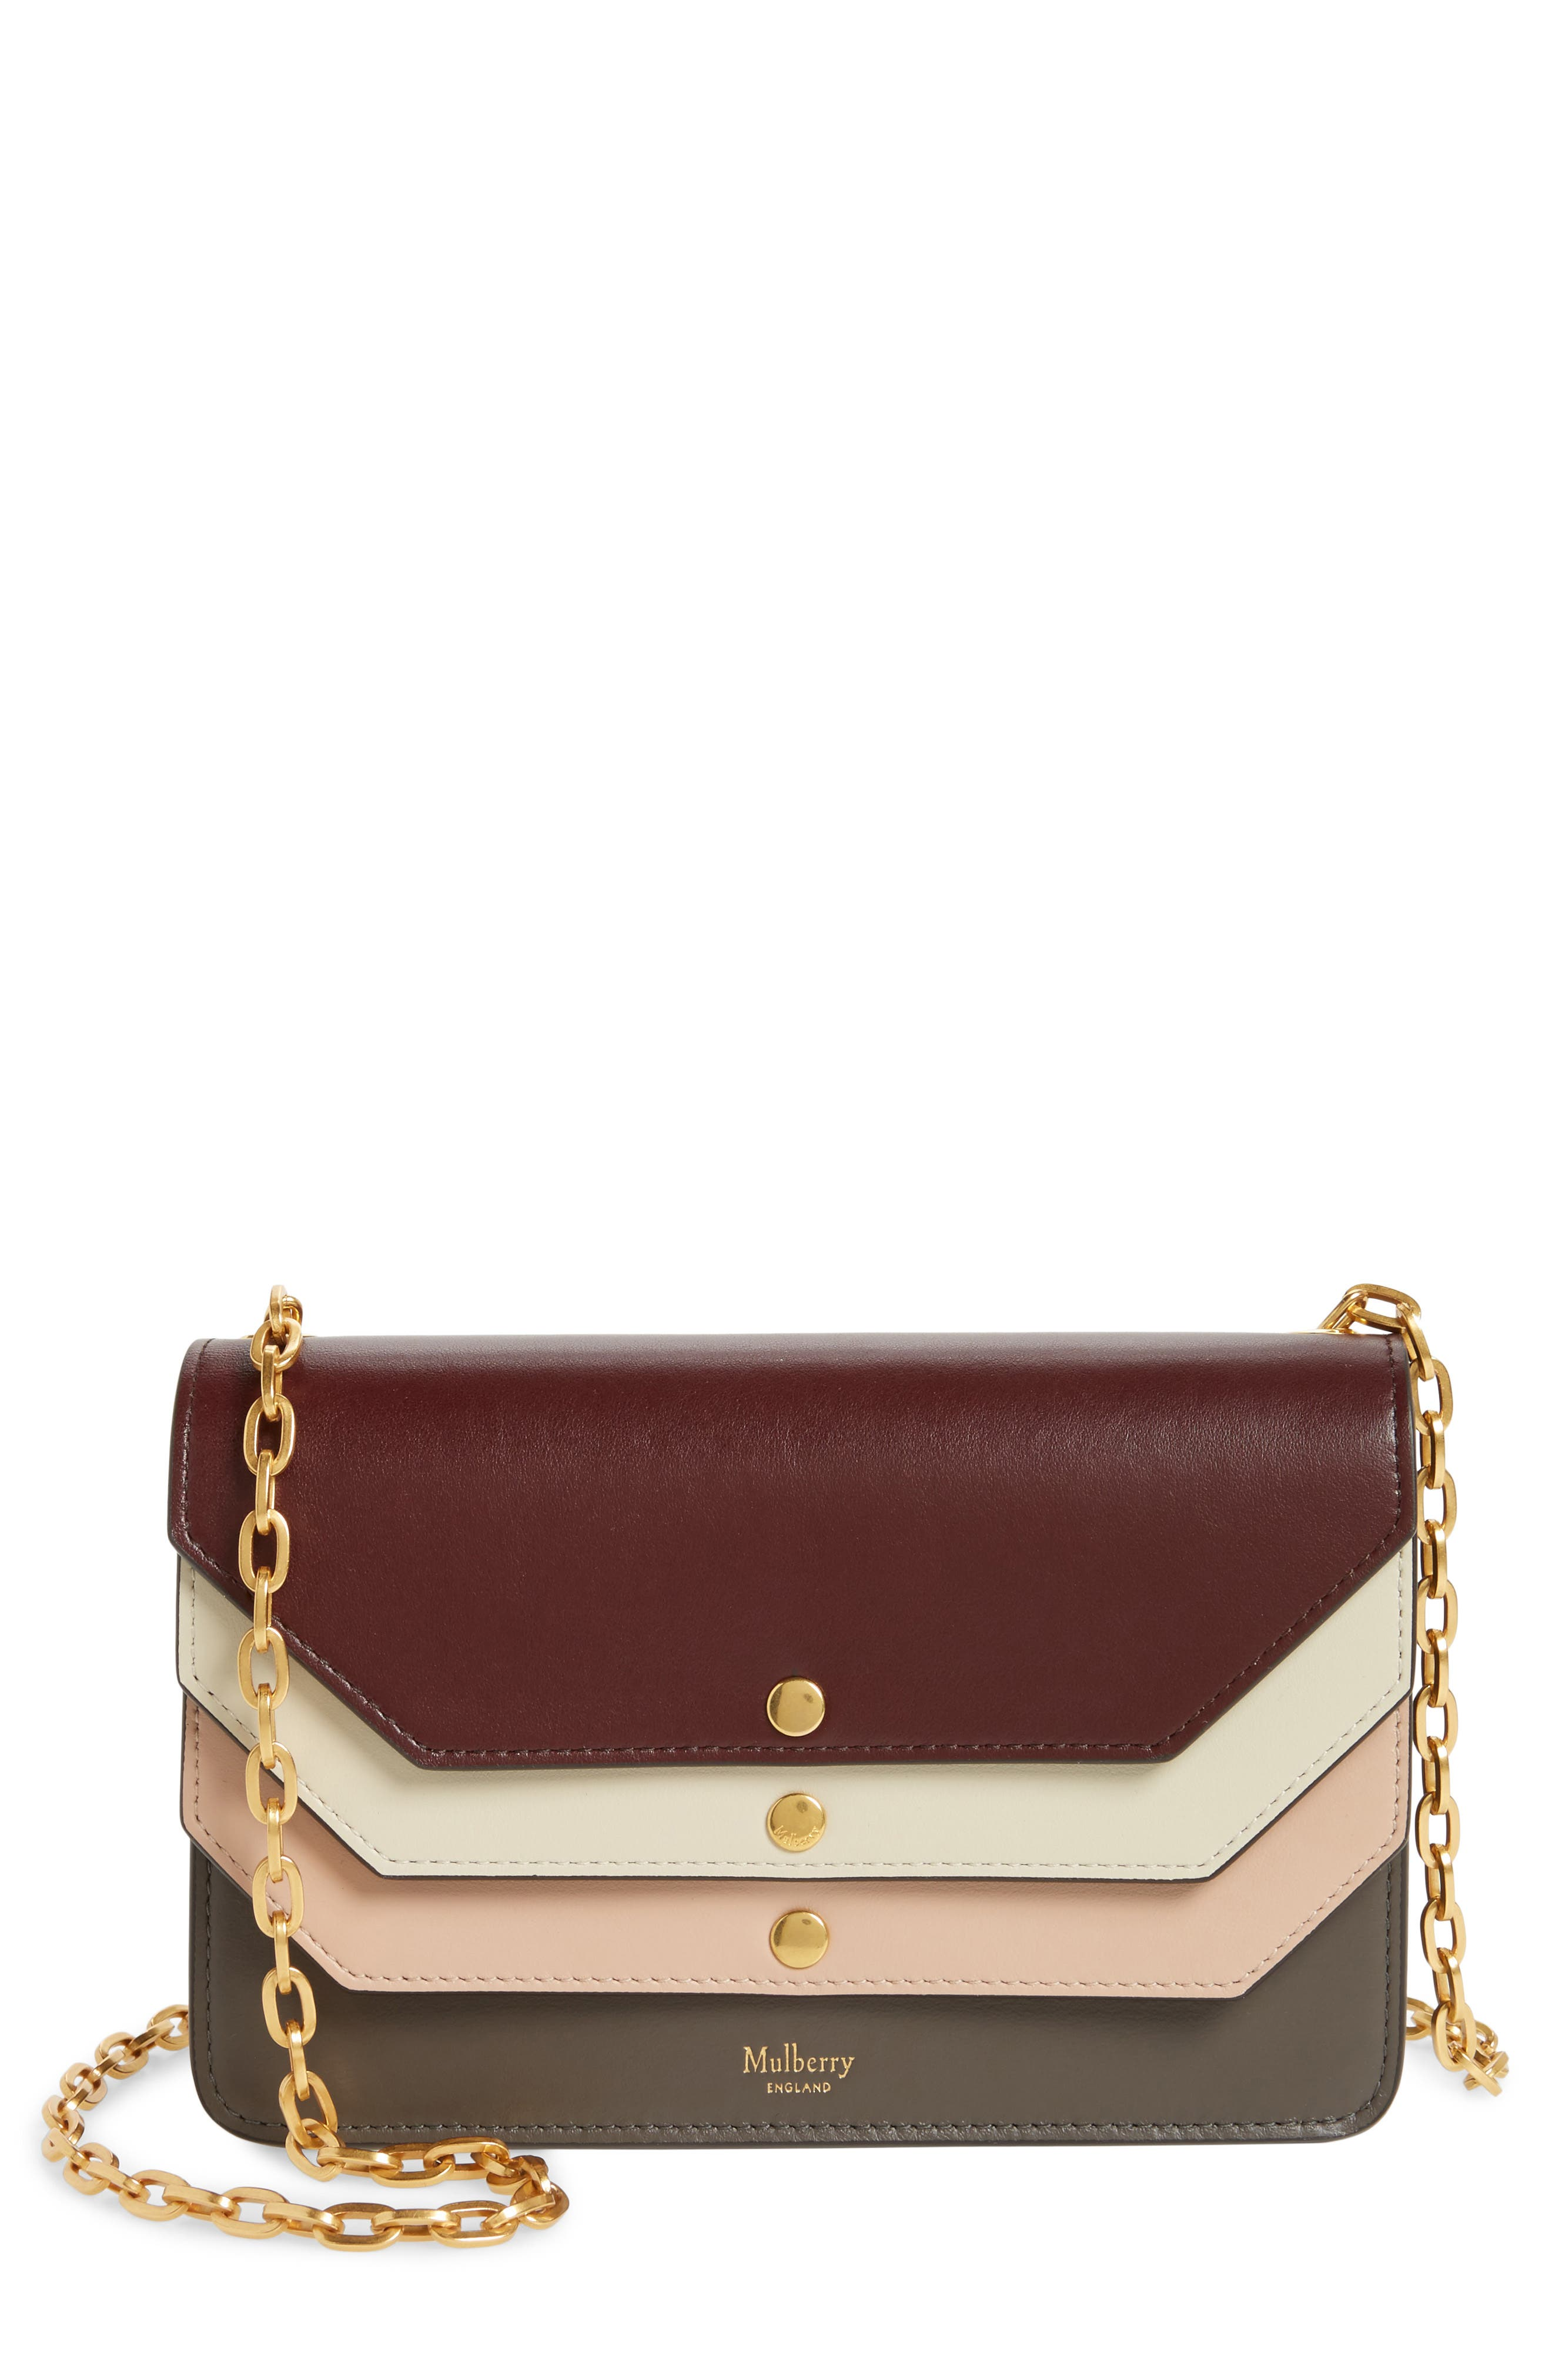 Mulberry Multiflap Calfskin Leather Clutch